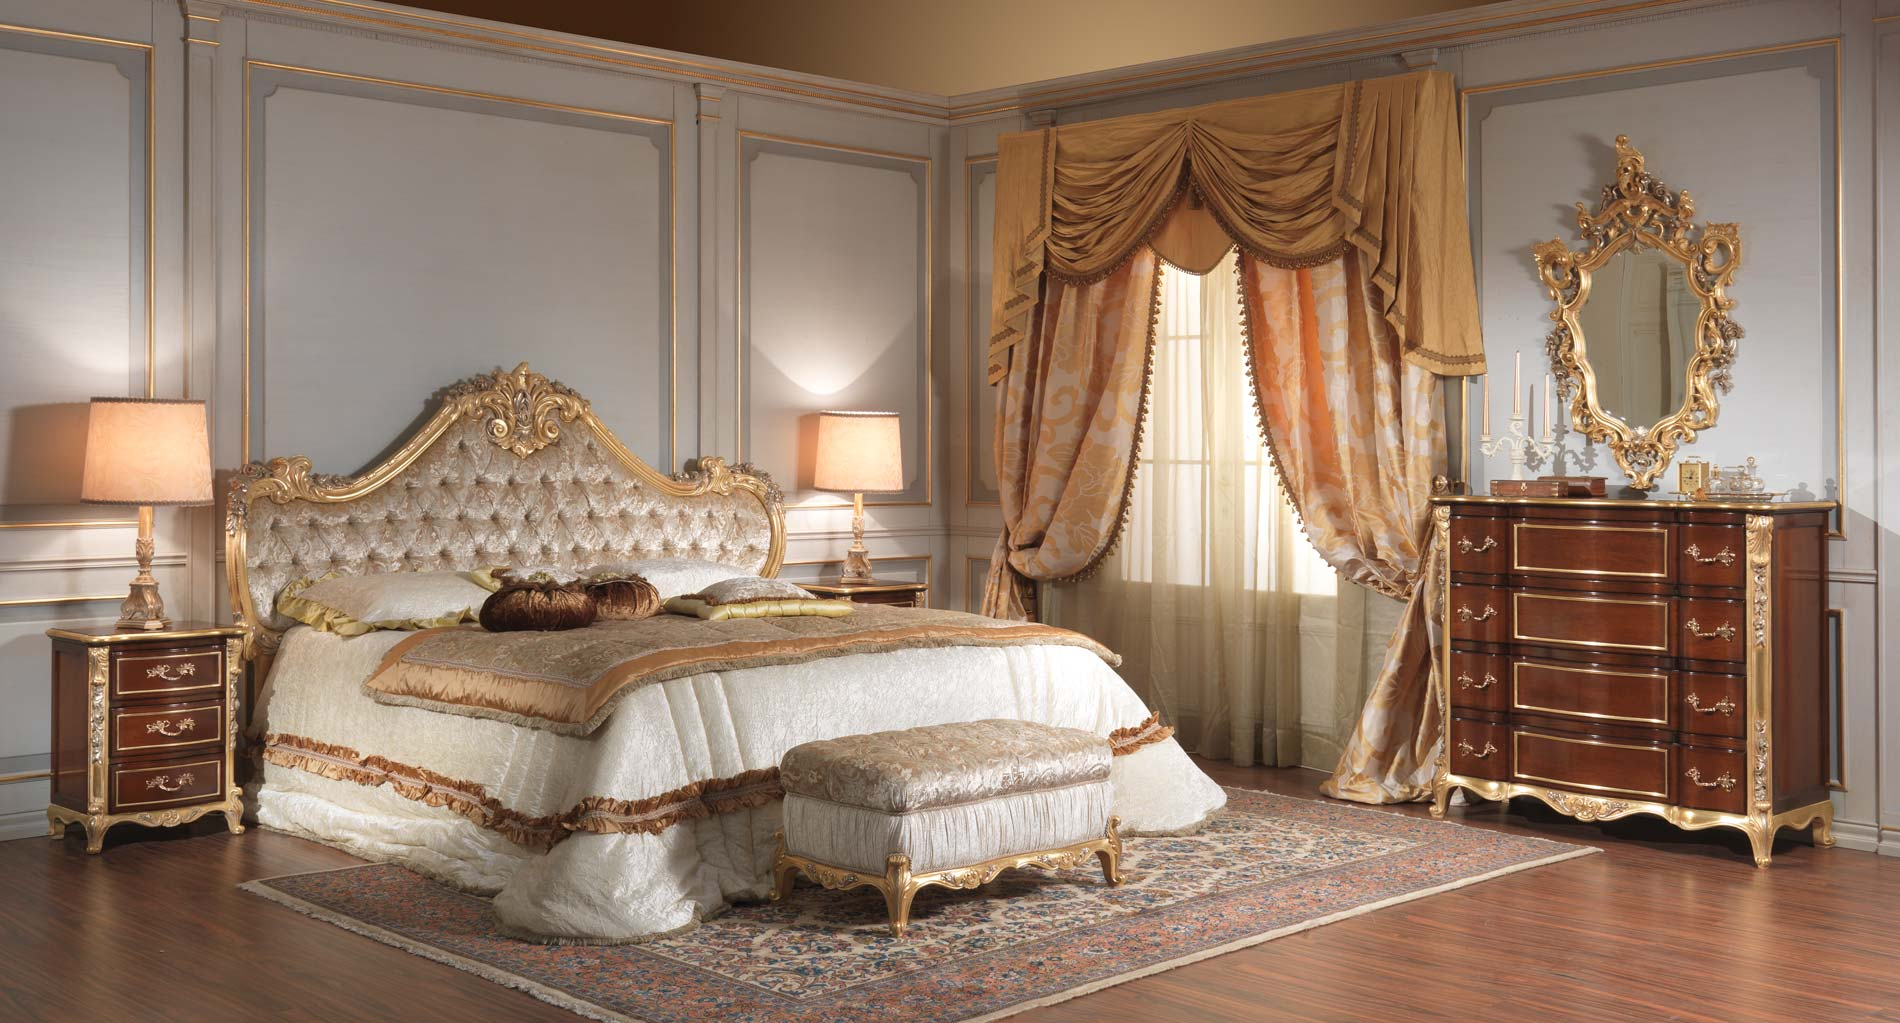 Camera da letto classica 700 italiano vimercati meda for Classic bedroom furniture designs